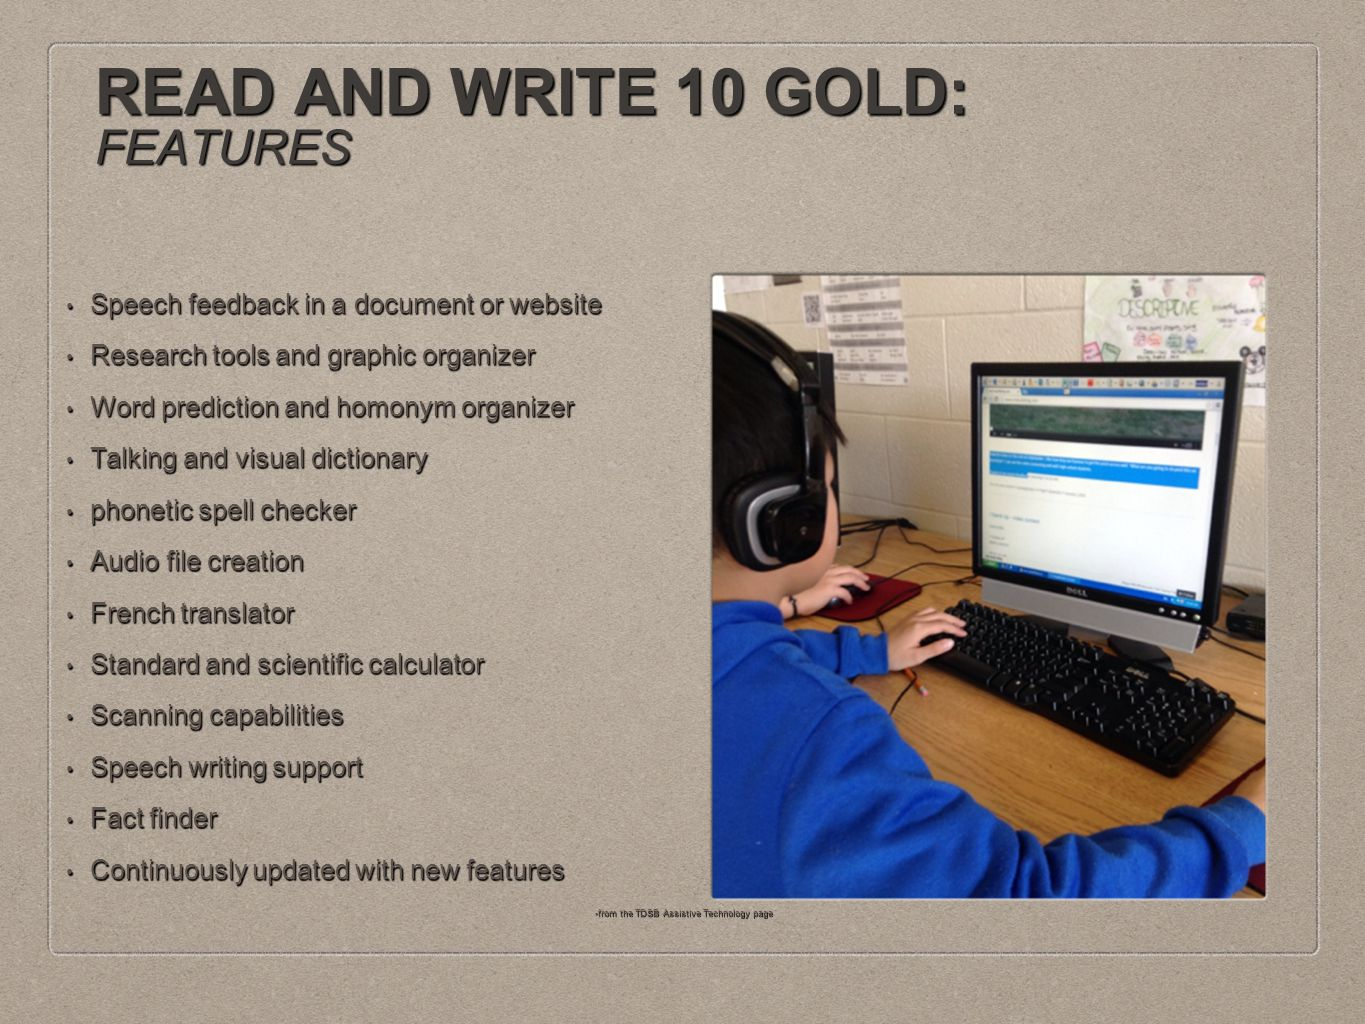 READ AND WRITE 10 GOLD: FEATURES Speech feedback in a document or website Speech feedback in a document or website Research tools and graphic organizer Research tools and graphic organizer Word prediction and homonym organizer Word prediction and homonym organizer Talking and visual dictionary Talking and visual dictionary phonetic spell checker phonetic spell checker Audio file creation Audio file creation French translator French translator Standard and scientific calculator Standard and scientific calculator Scanning capabilities Scanning capabilities Speech writing support Speech writing support Fact finder Fact finder Continuously updated with new features Continuously updated with new features -from the TDSB Assistive Technology page